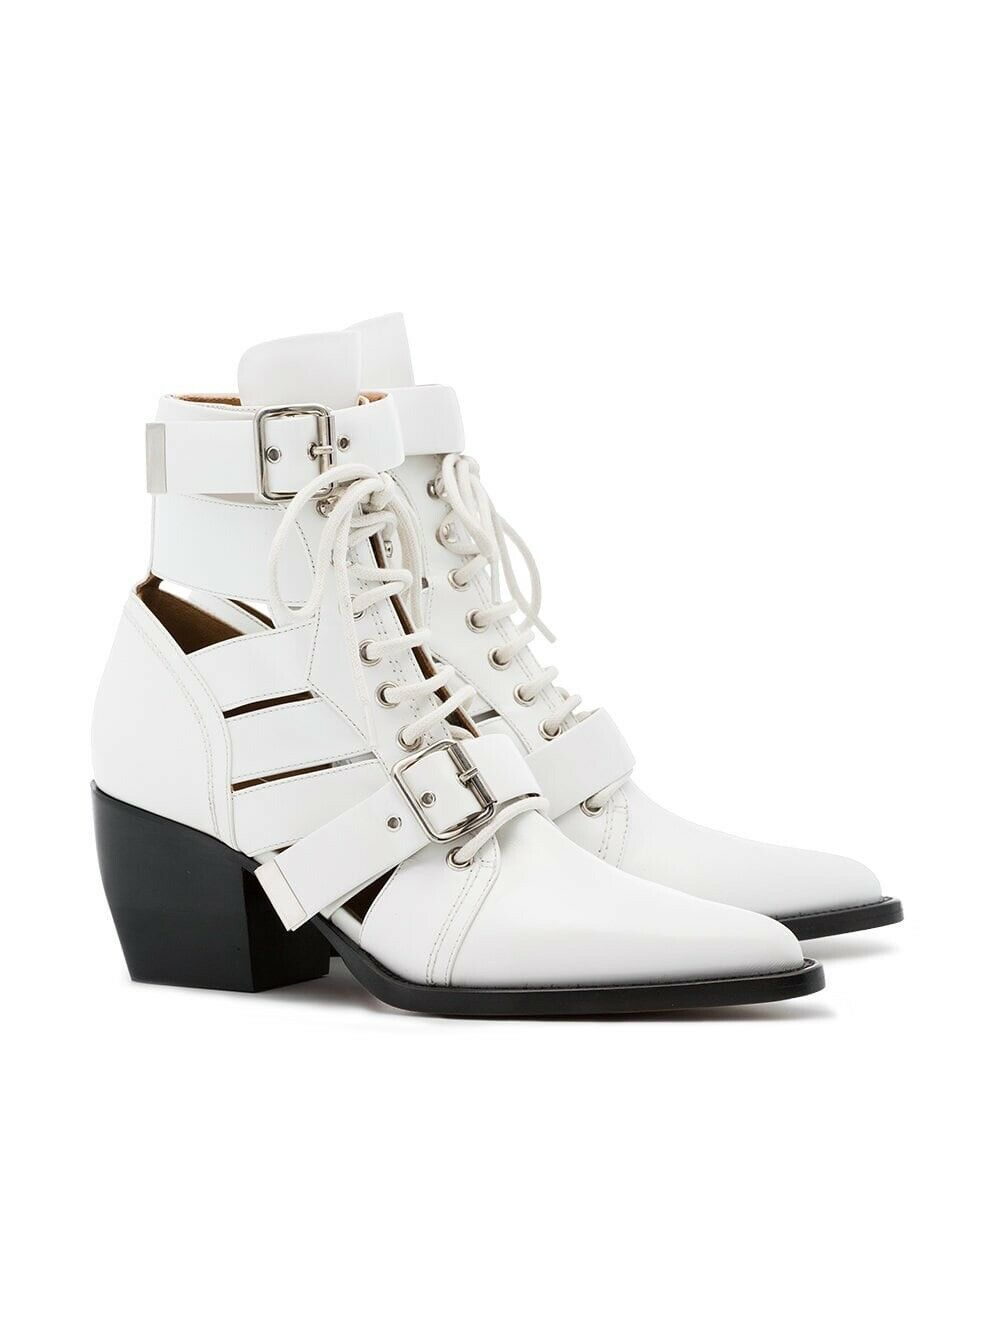 New In Box Chloe Rylee Lace-Up White Calf Leather Cage Boots 38.5 8.5  1390.00